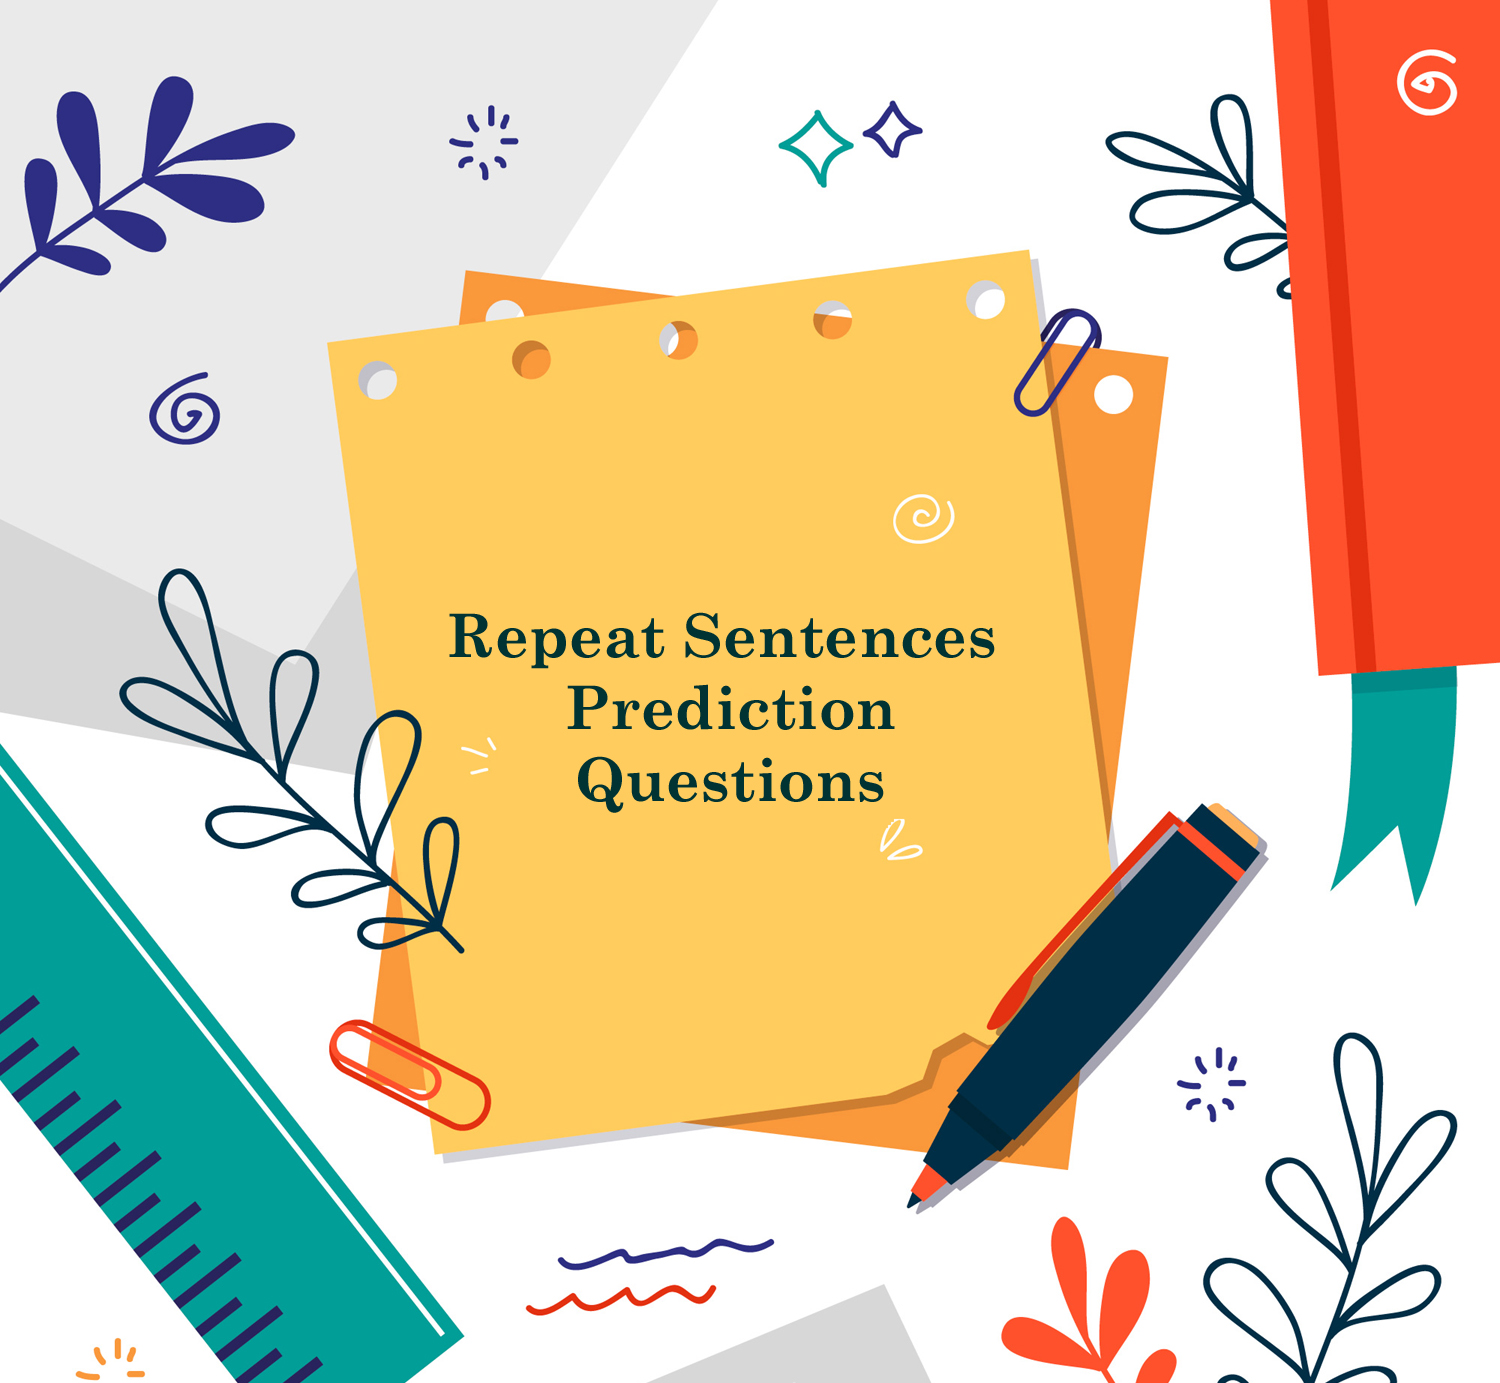 Repeat Sentences Prediction Questions – I